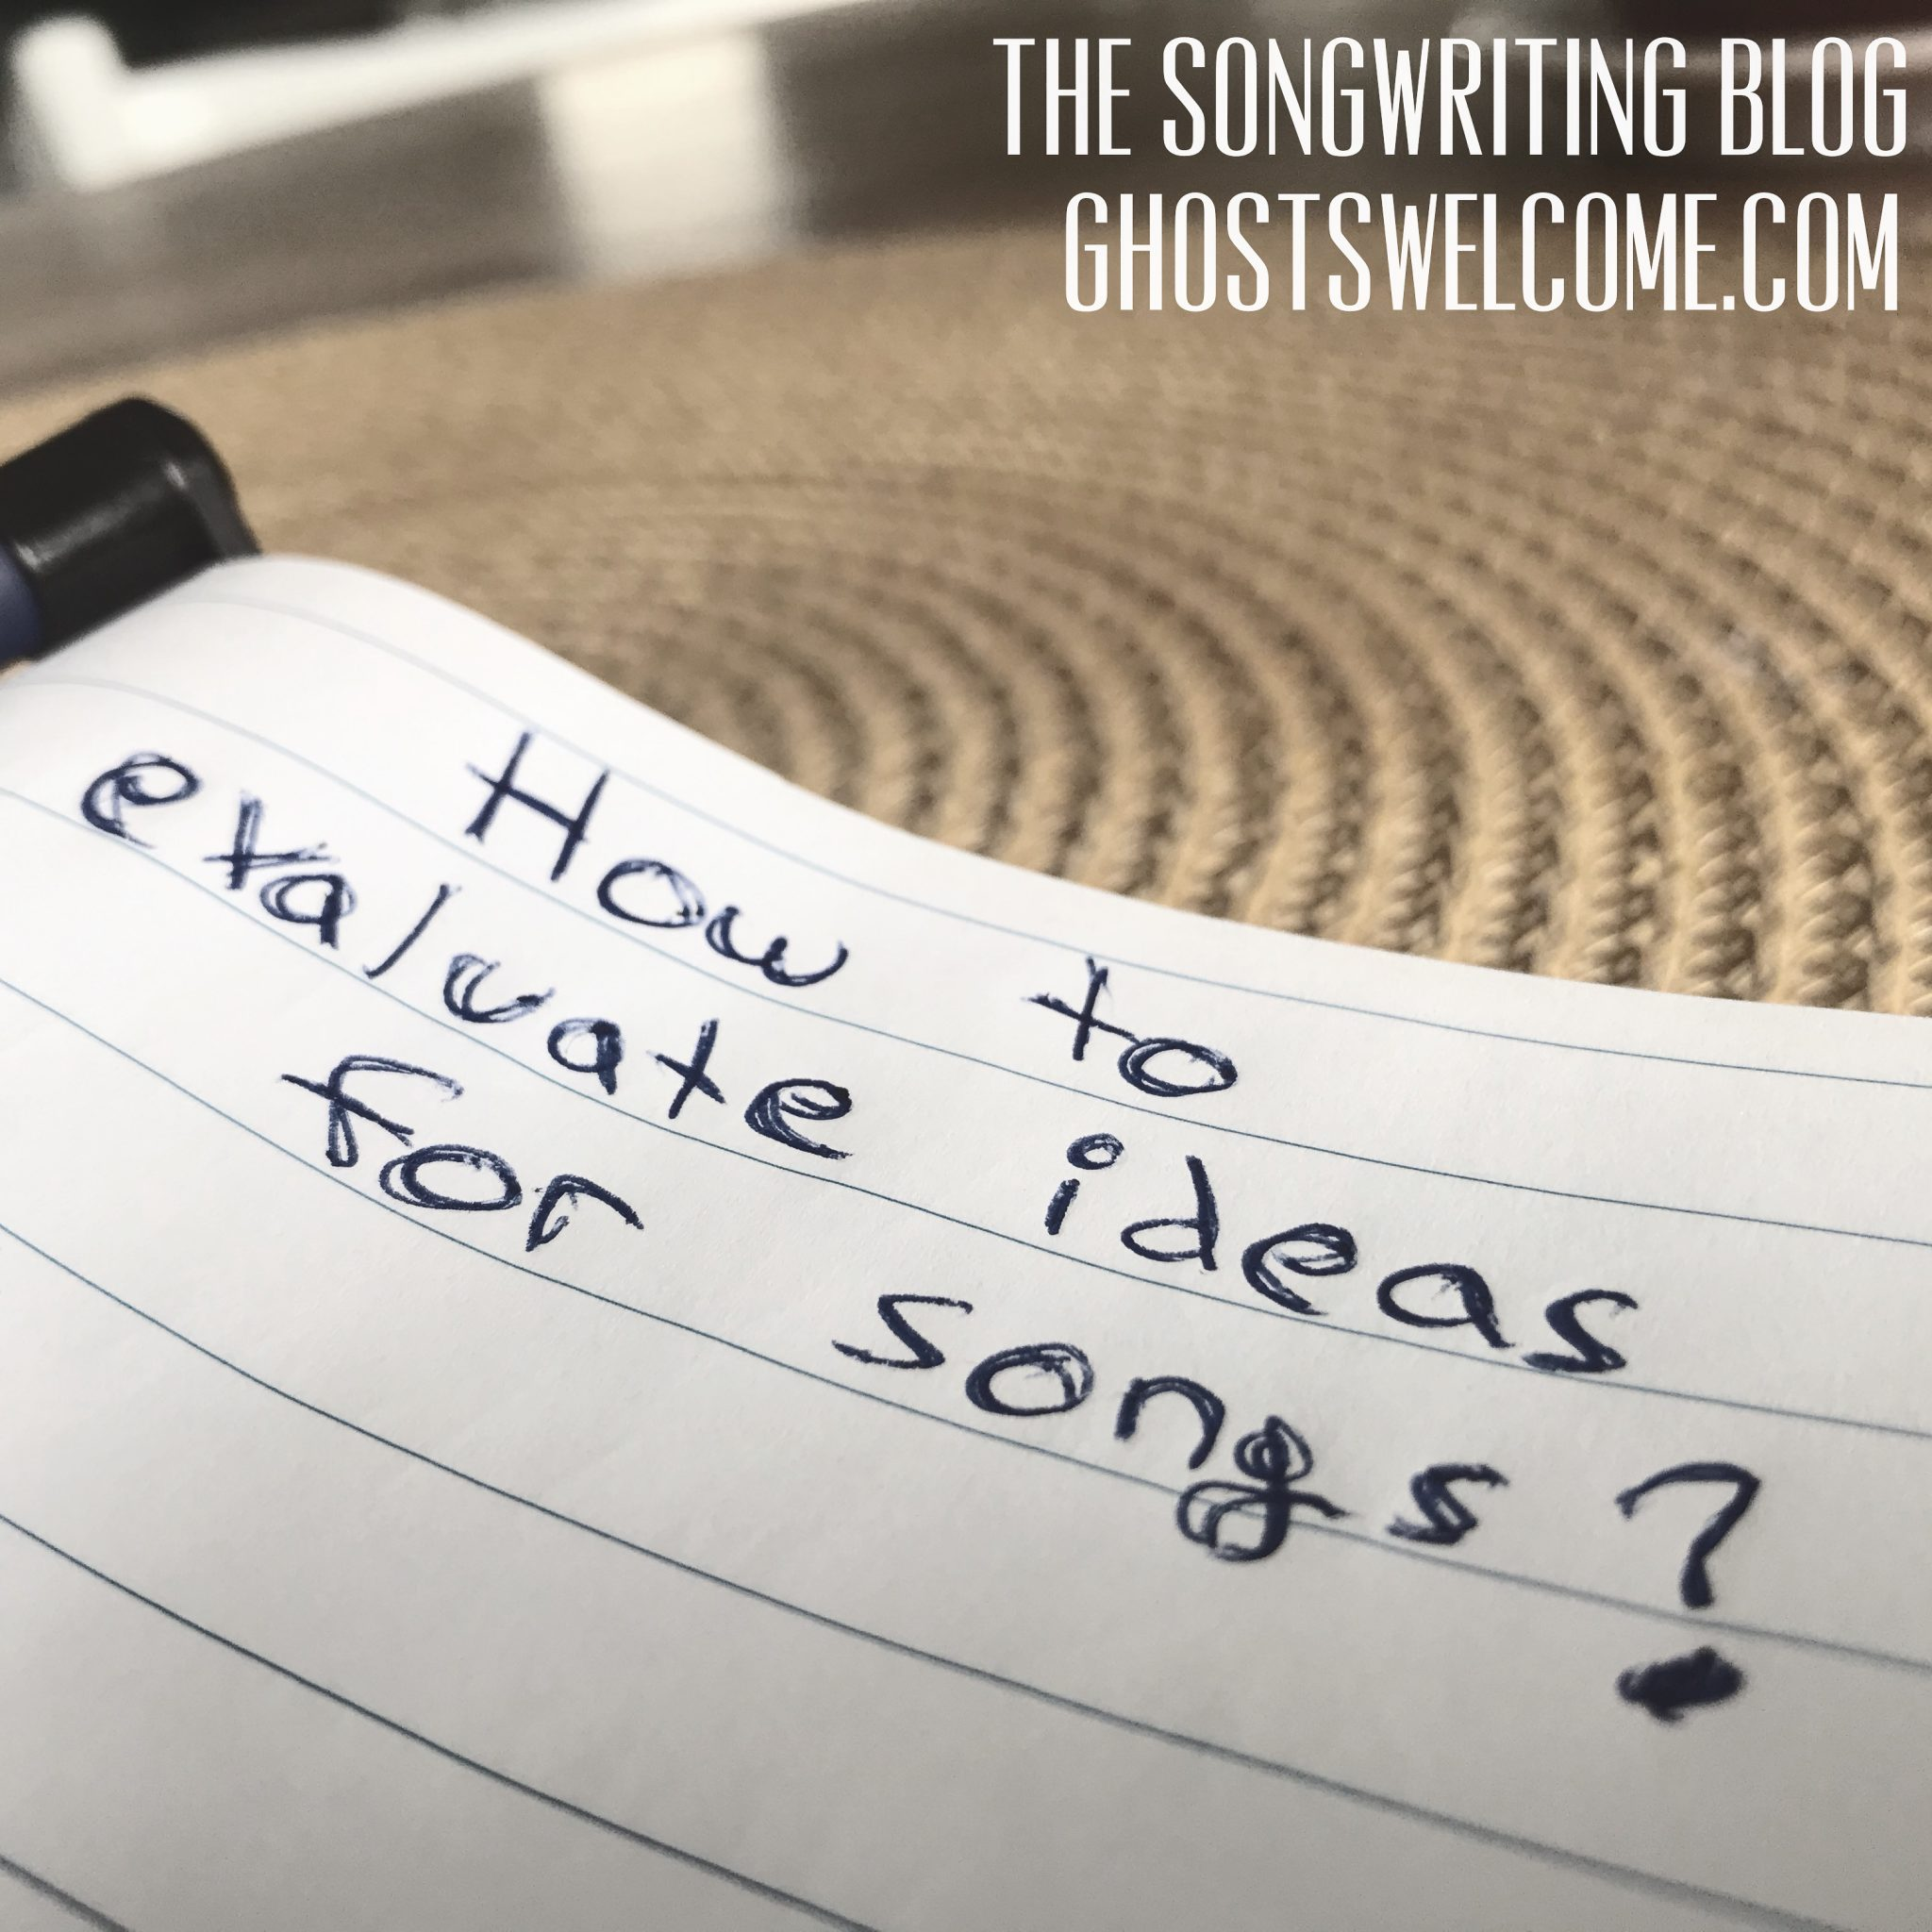 How to evaluate ideas for songs